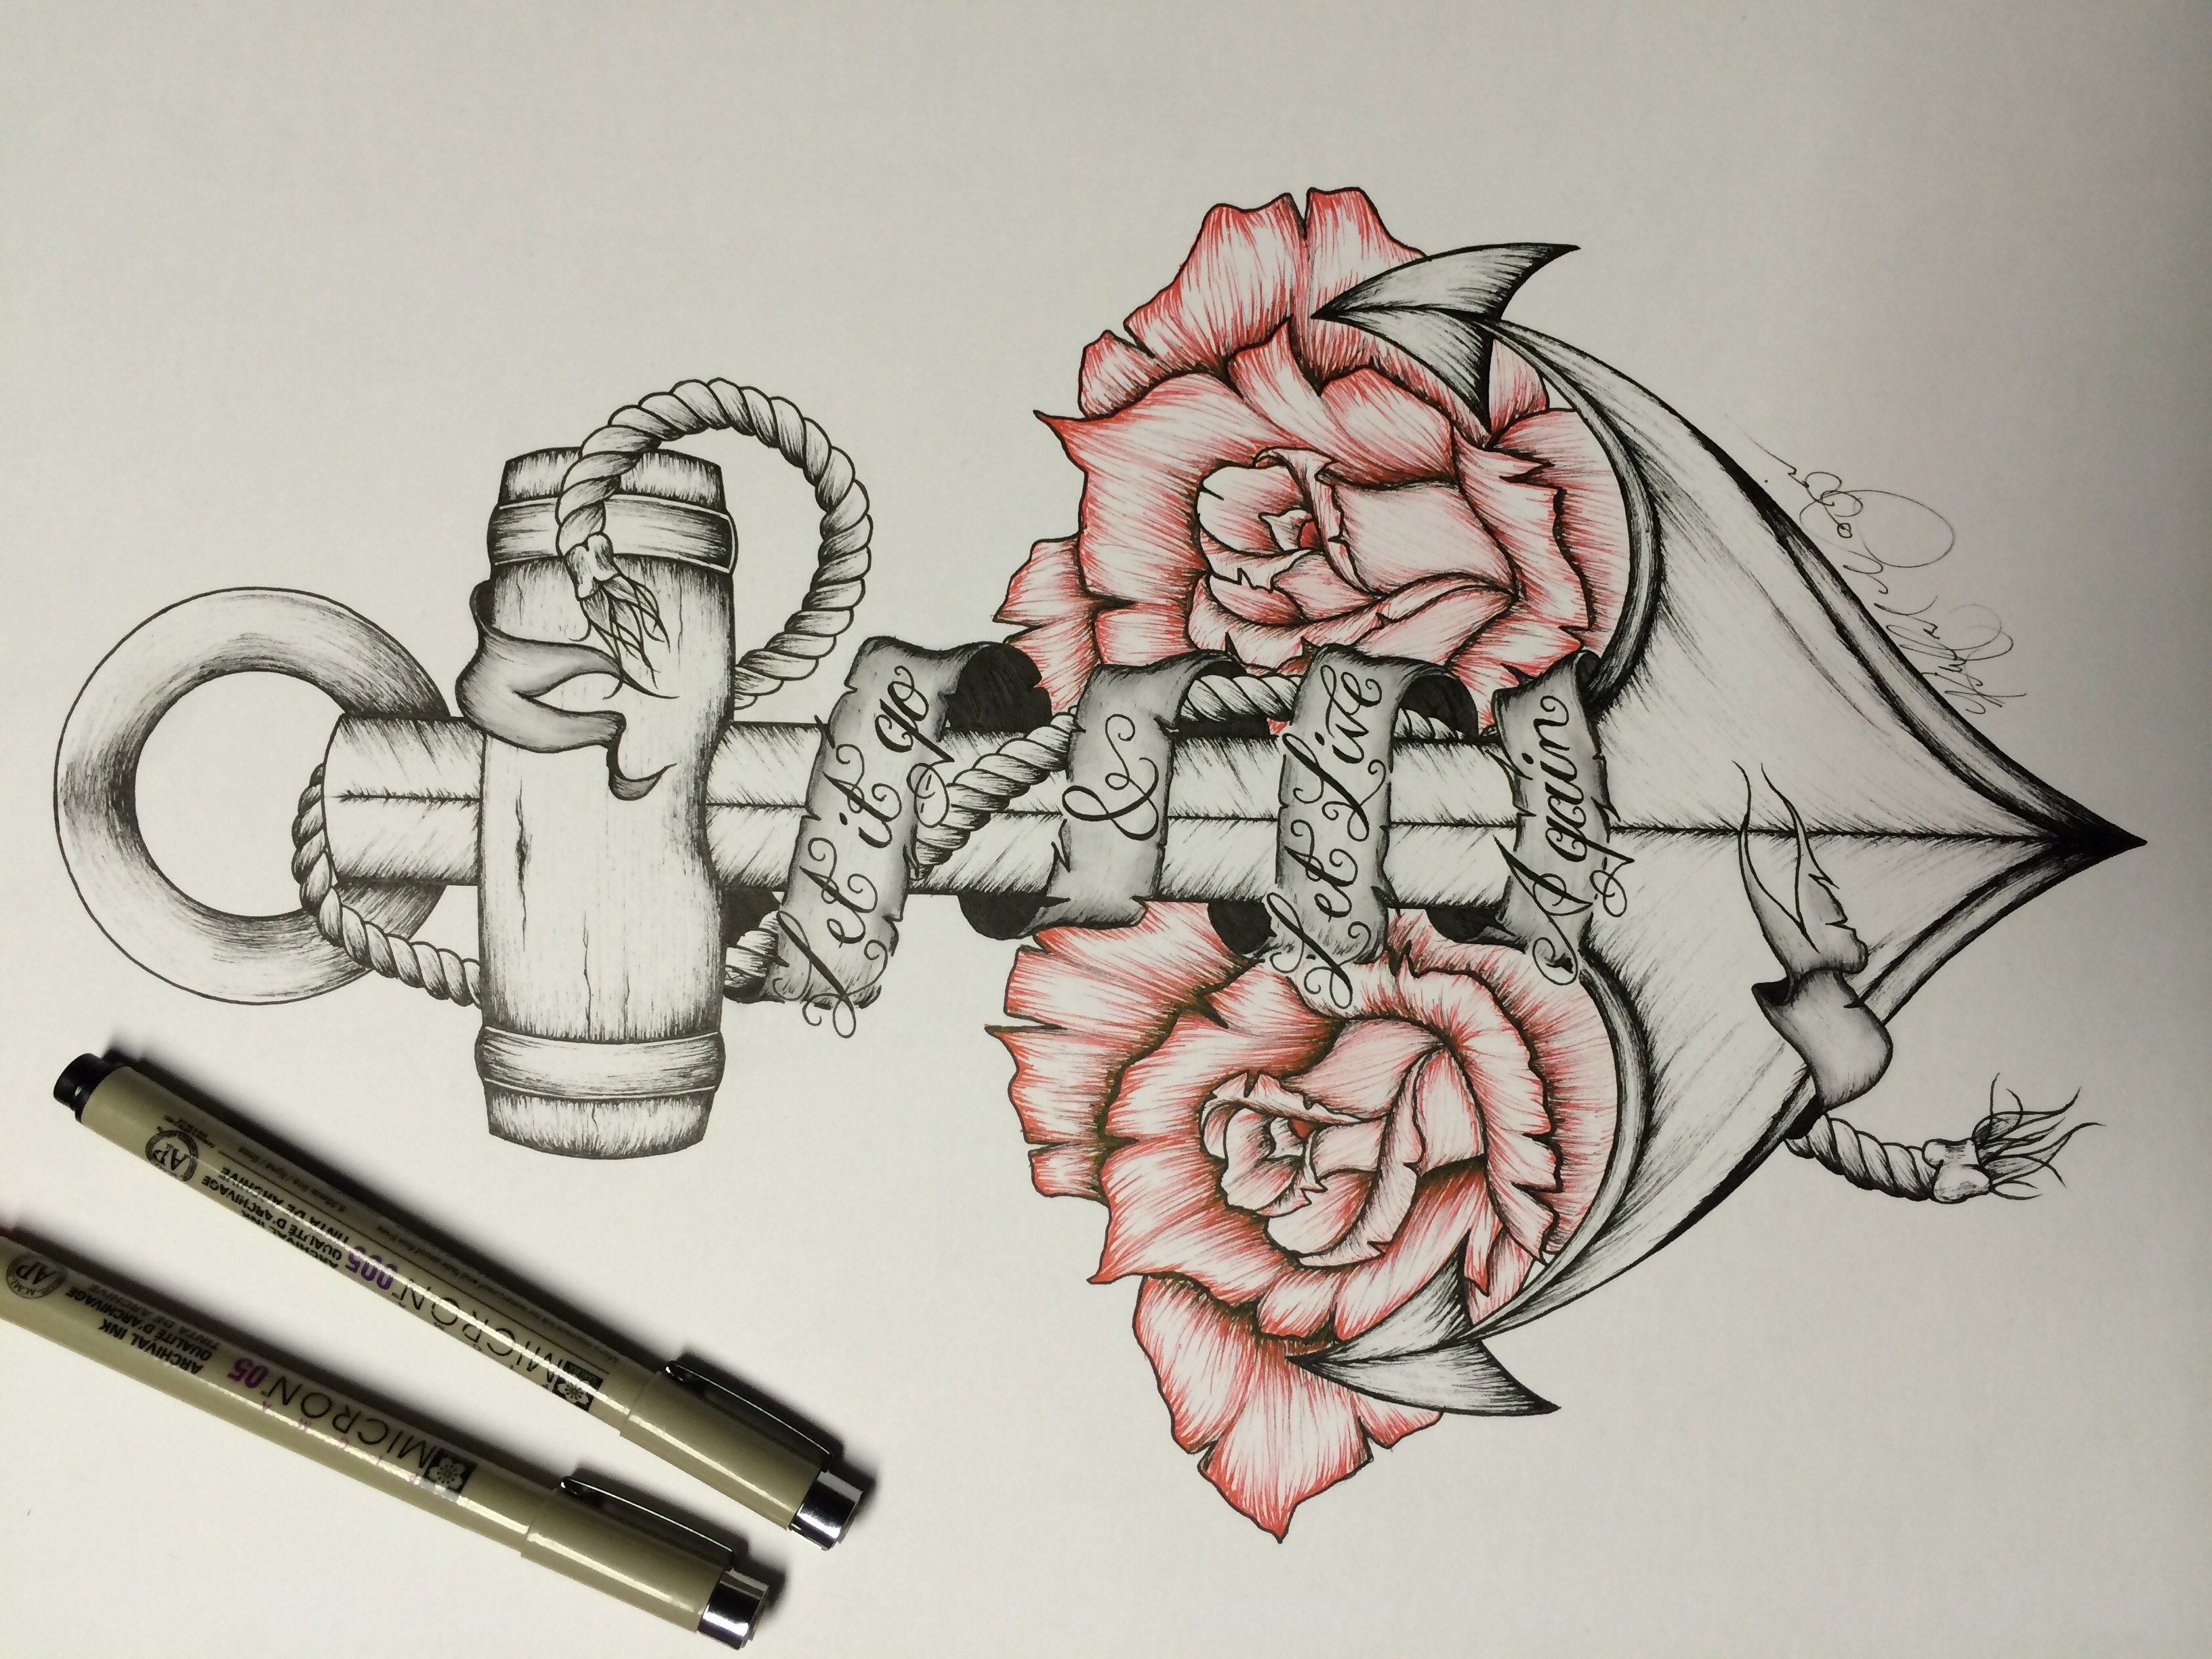 Inspirational Drawing Ideas: 24 Inspirational Meaningful Drawings Sketches Beautiful